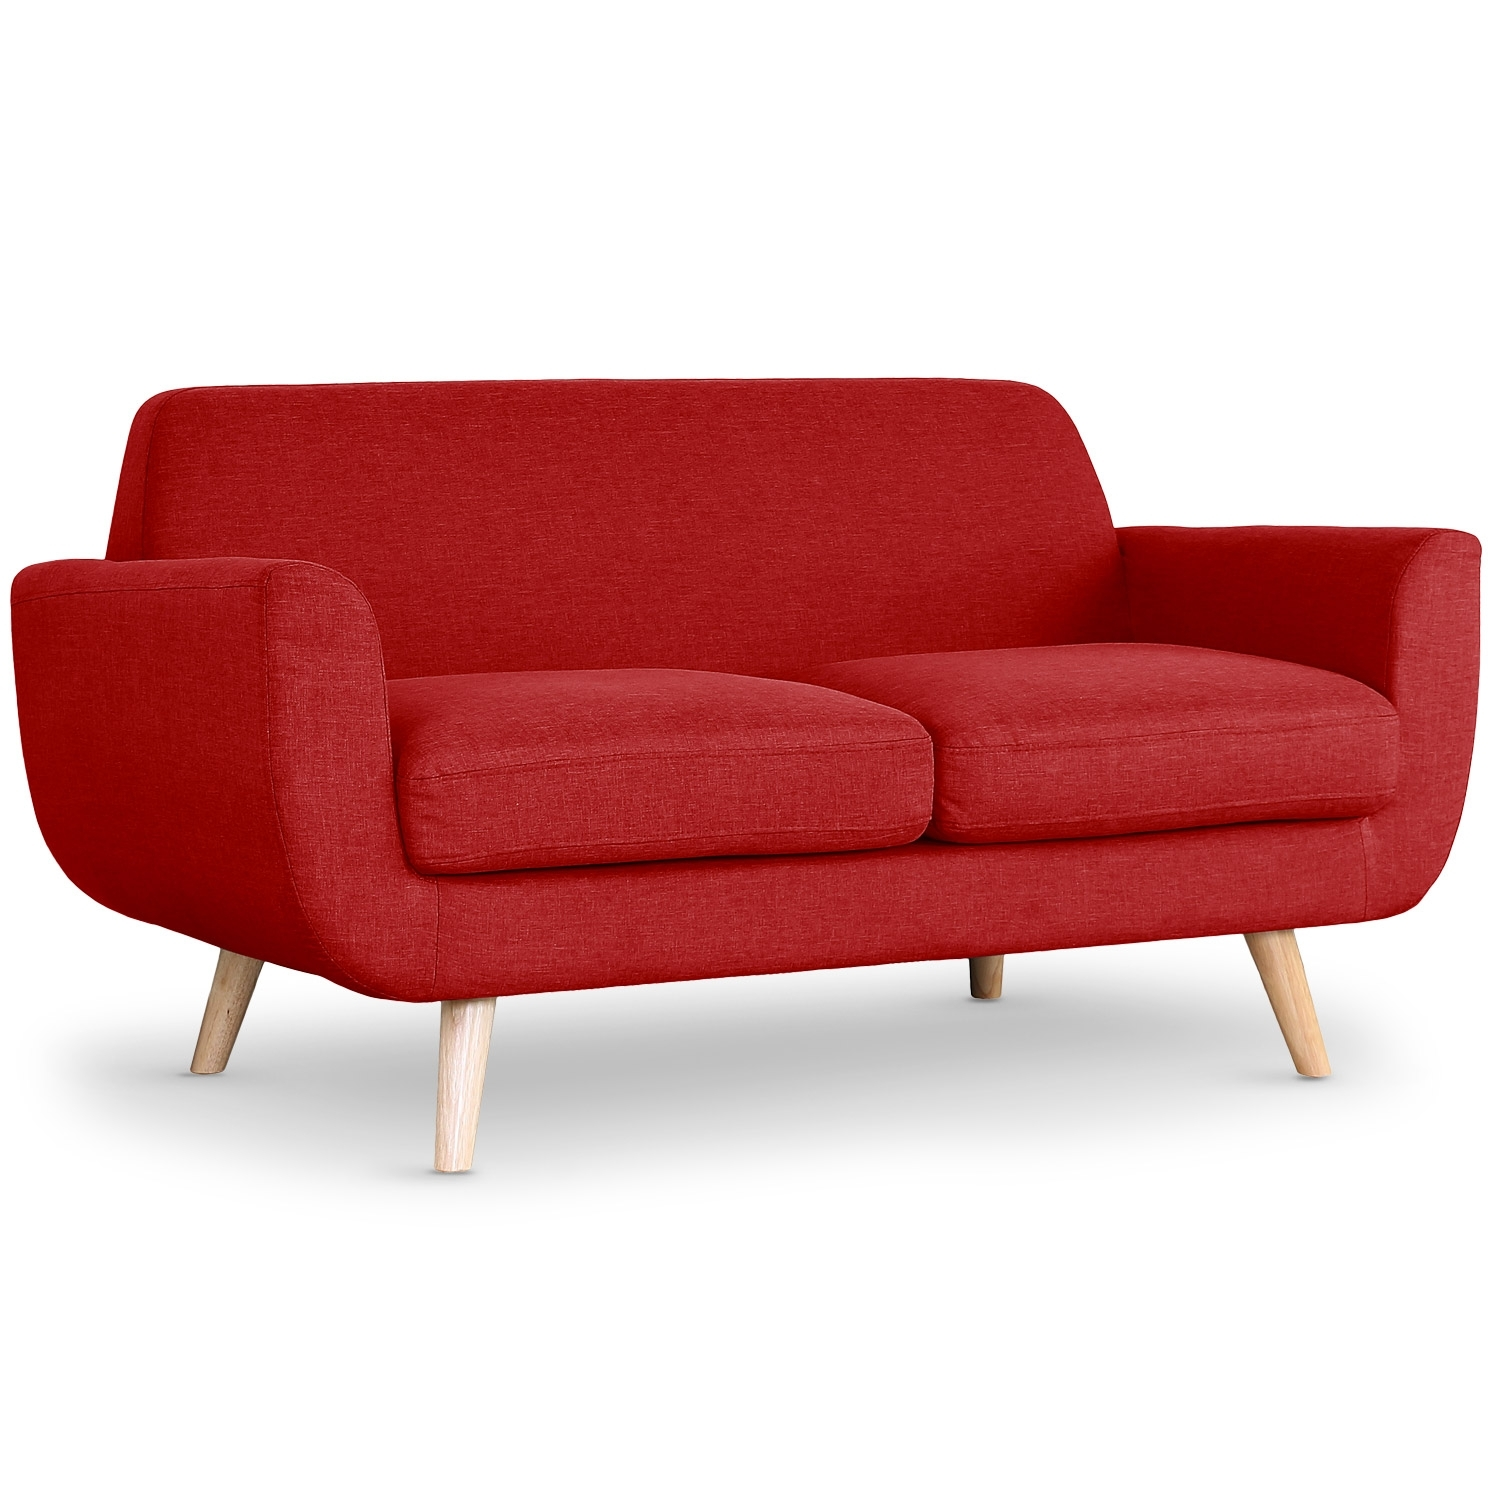 Canap scandinave 2 places tissu rouge for Canape 2 places rouge